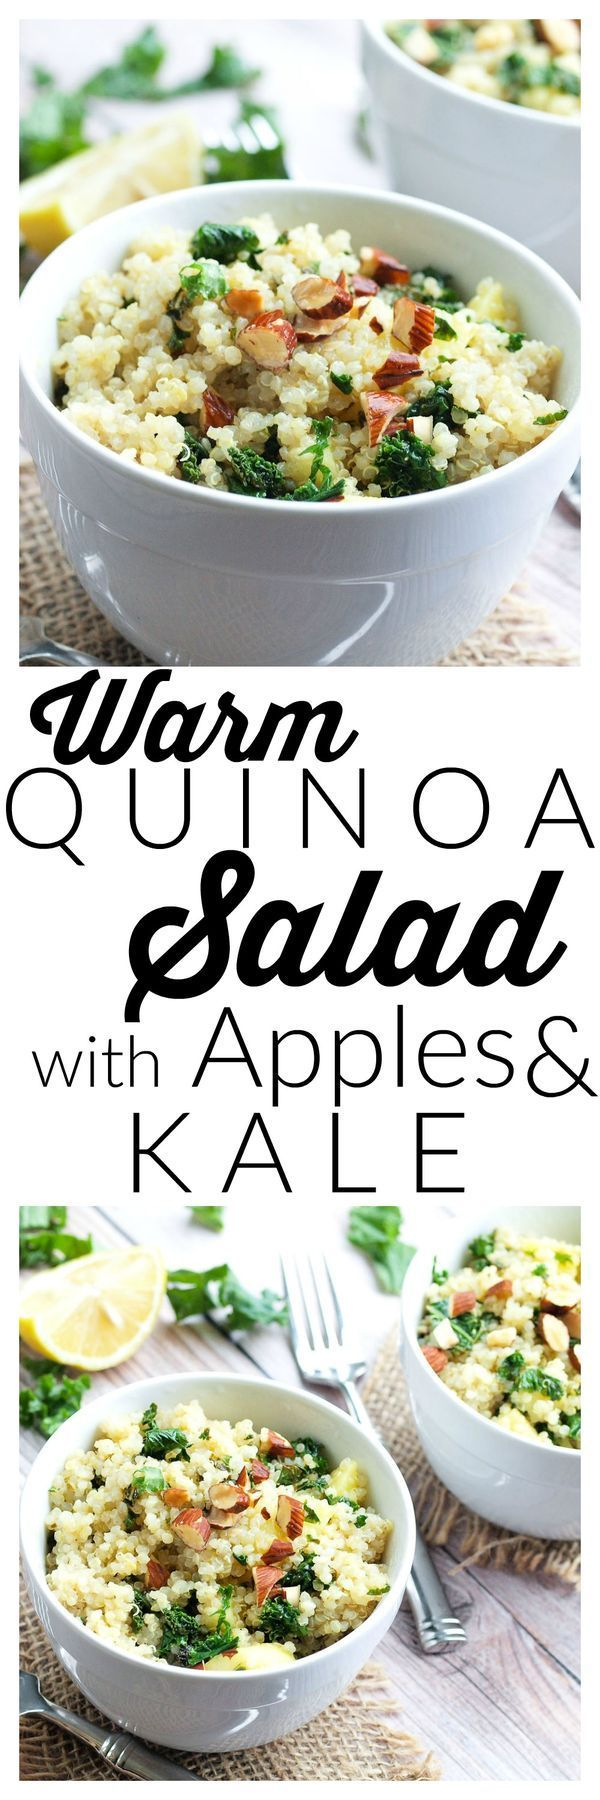 Warm Quinoa Salad with Apples and Kale.  This healthy salad recipe is great for lunch or a dinner side dish.  It has great flavor and is easy to make!